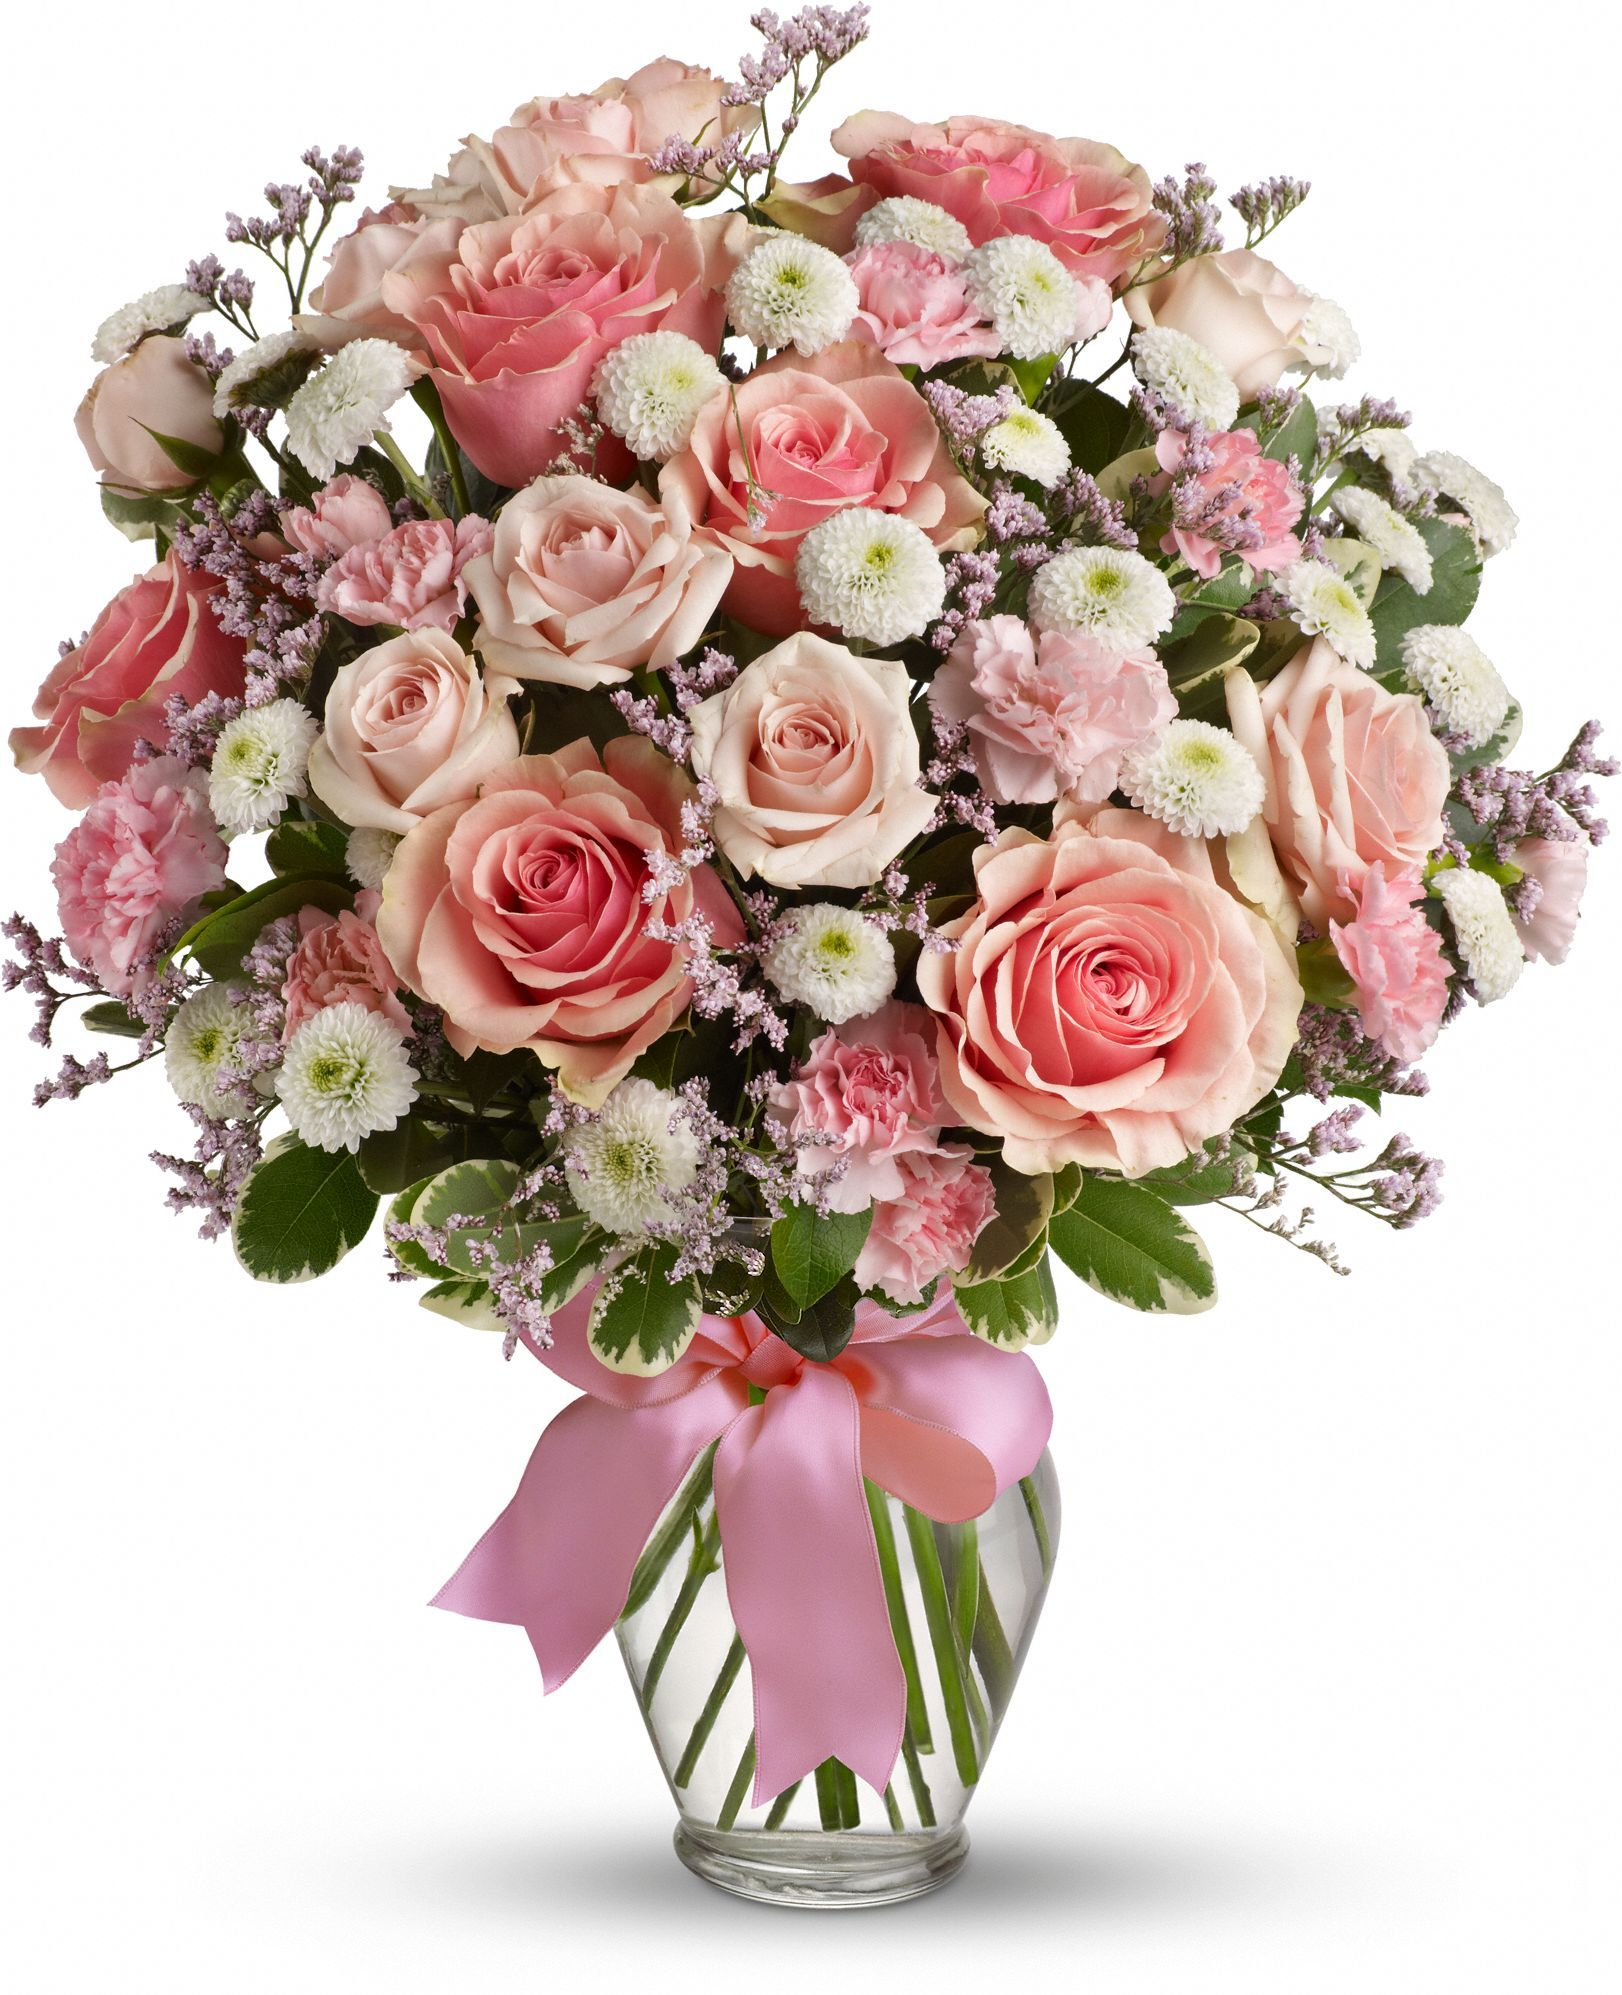 Cotton Candy with Roses Save 25 on this bouquet and many